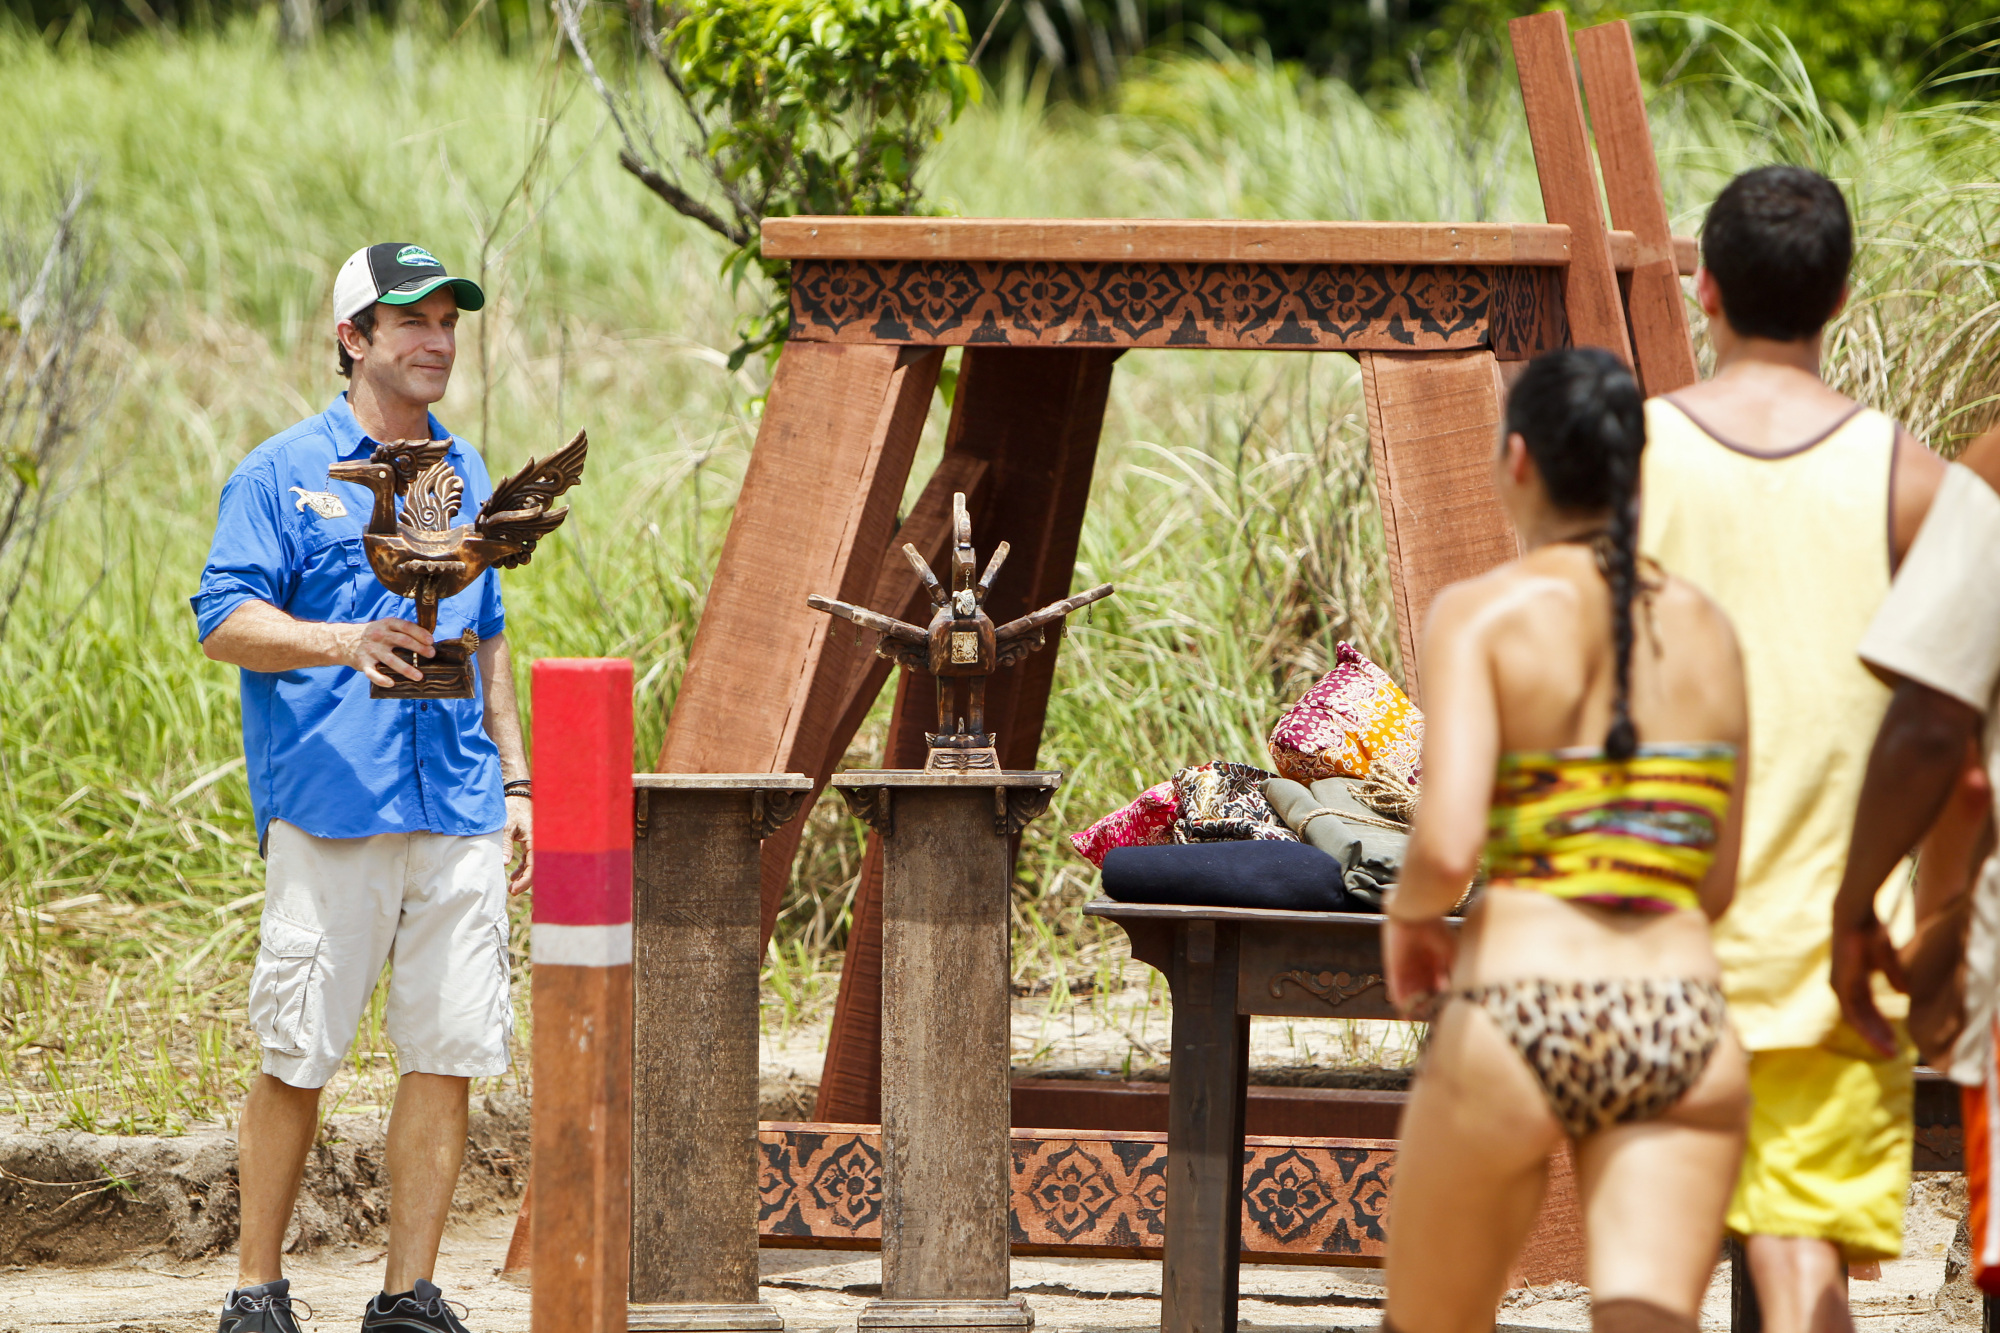 Jeff Probst Presents the Immunity Idol